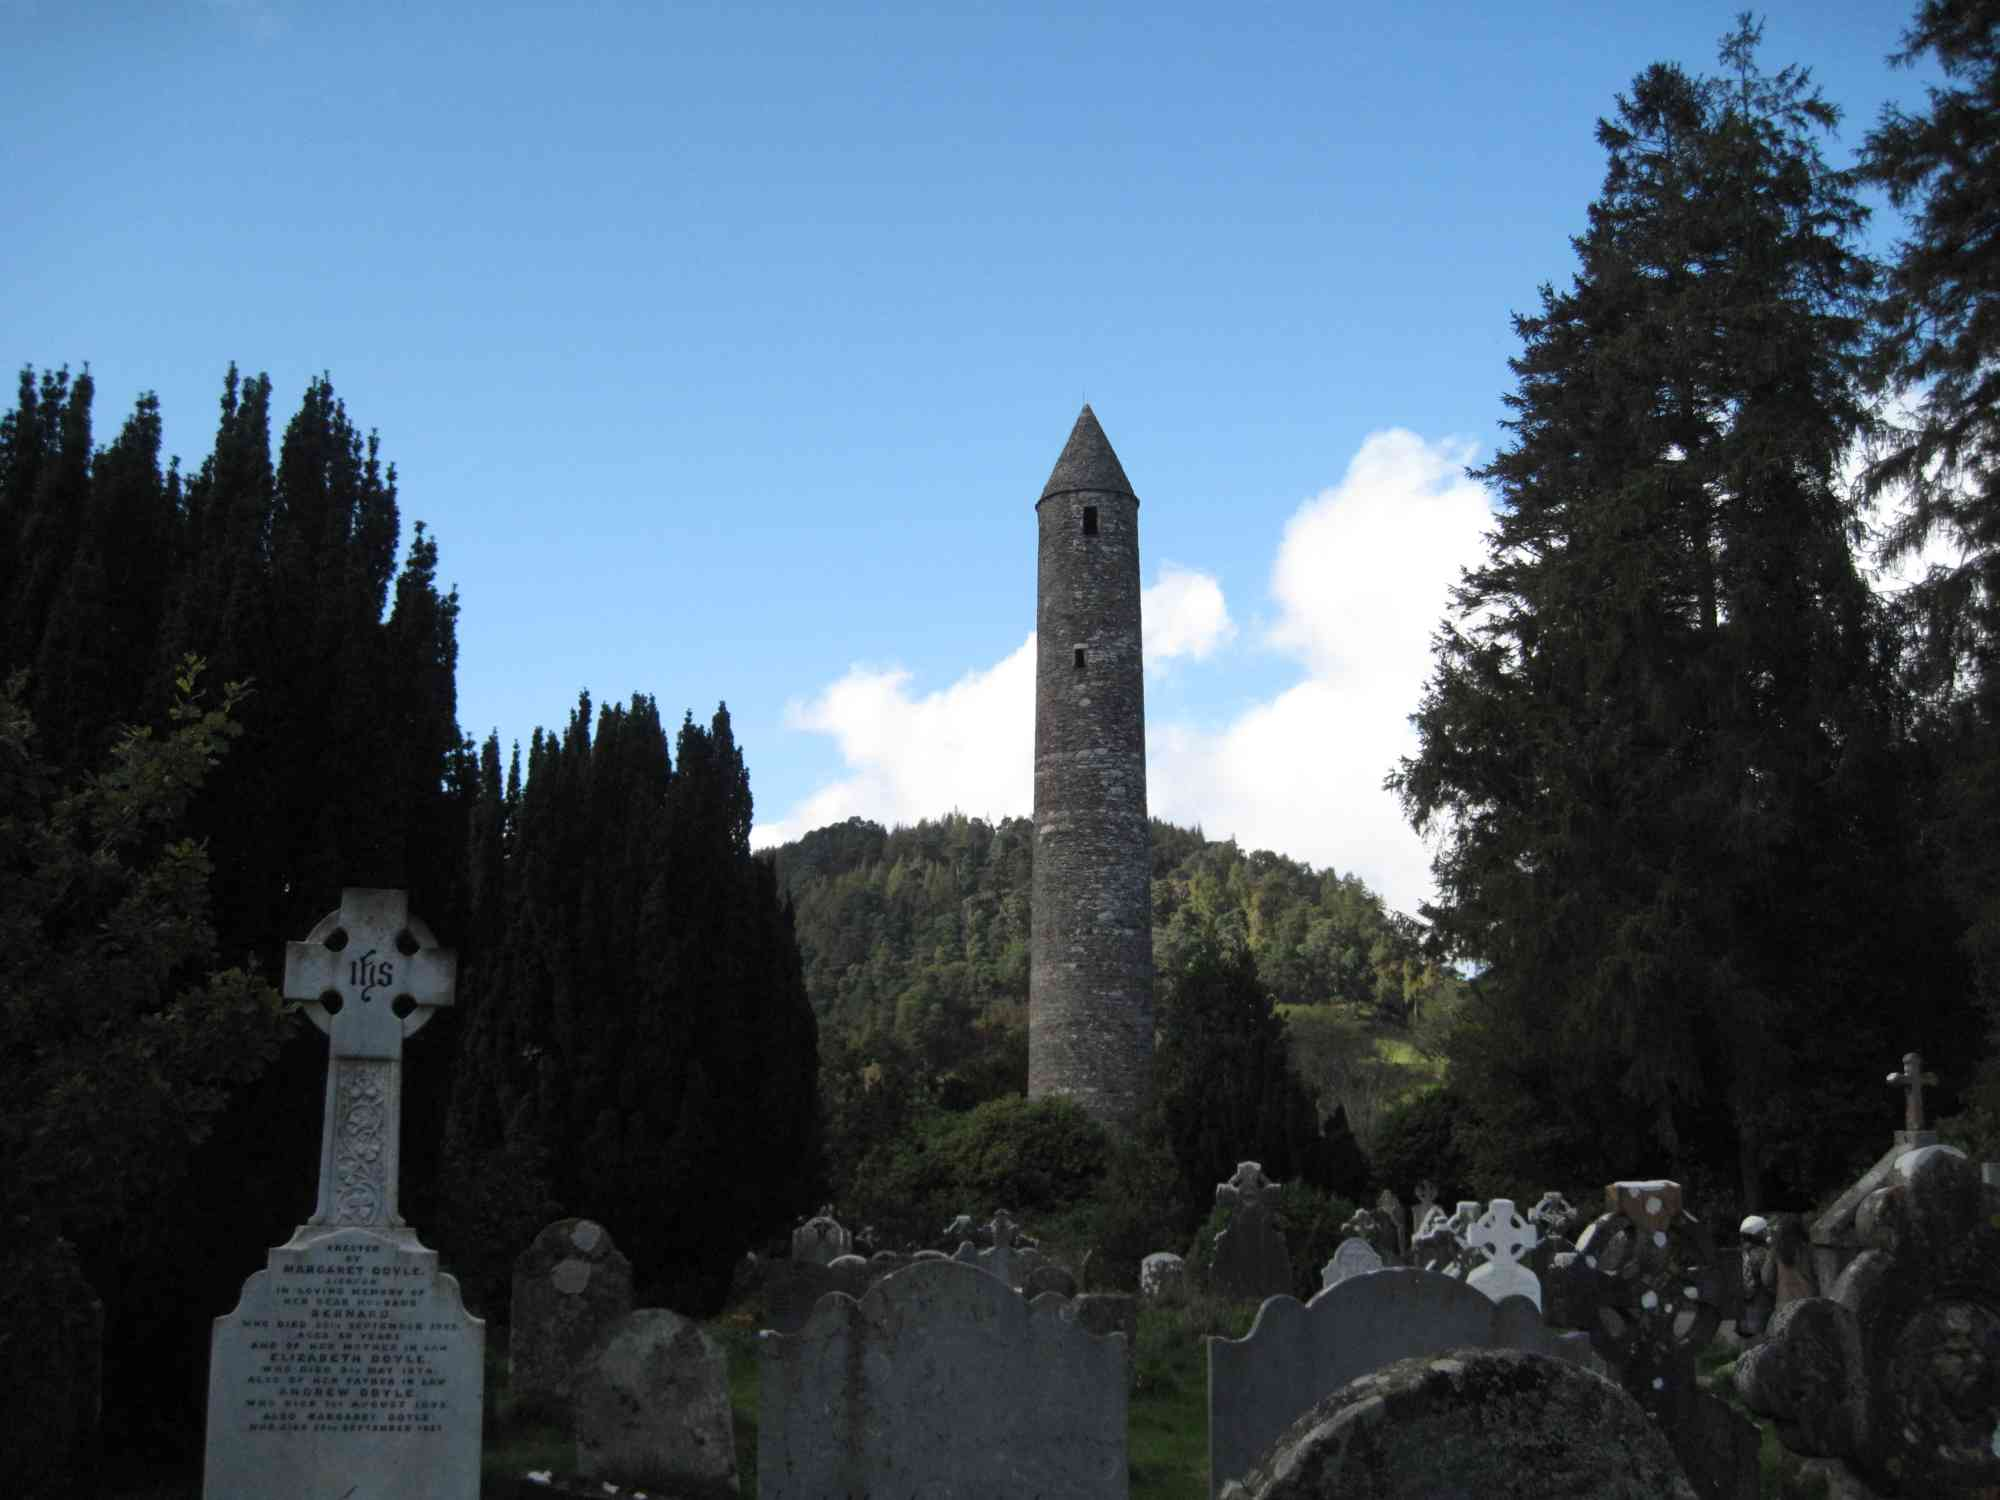 Glendalough's tower seen from a distance